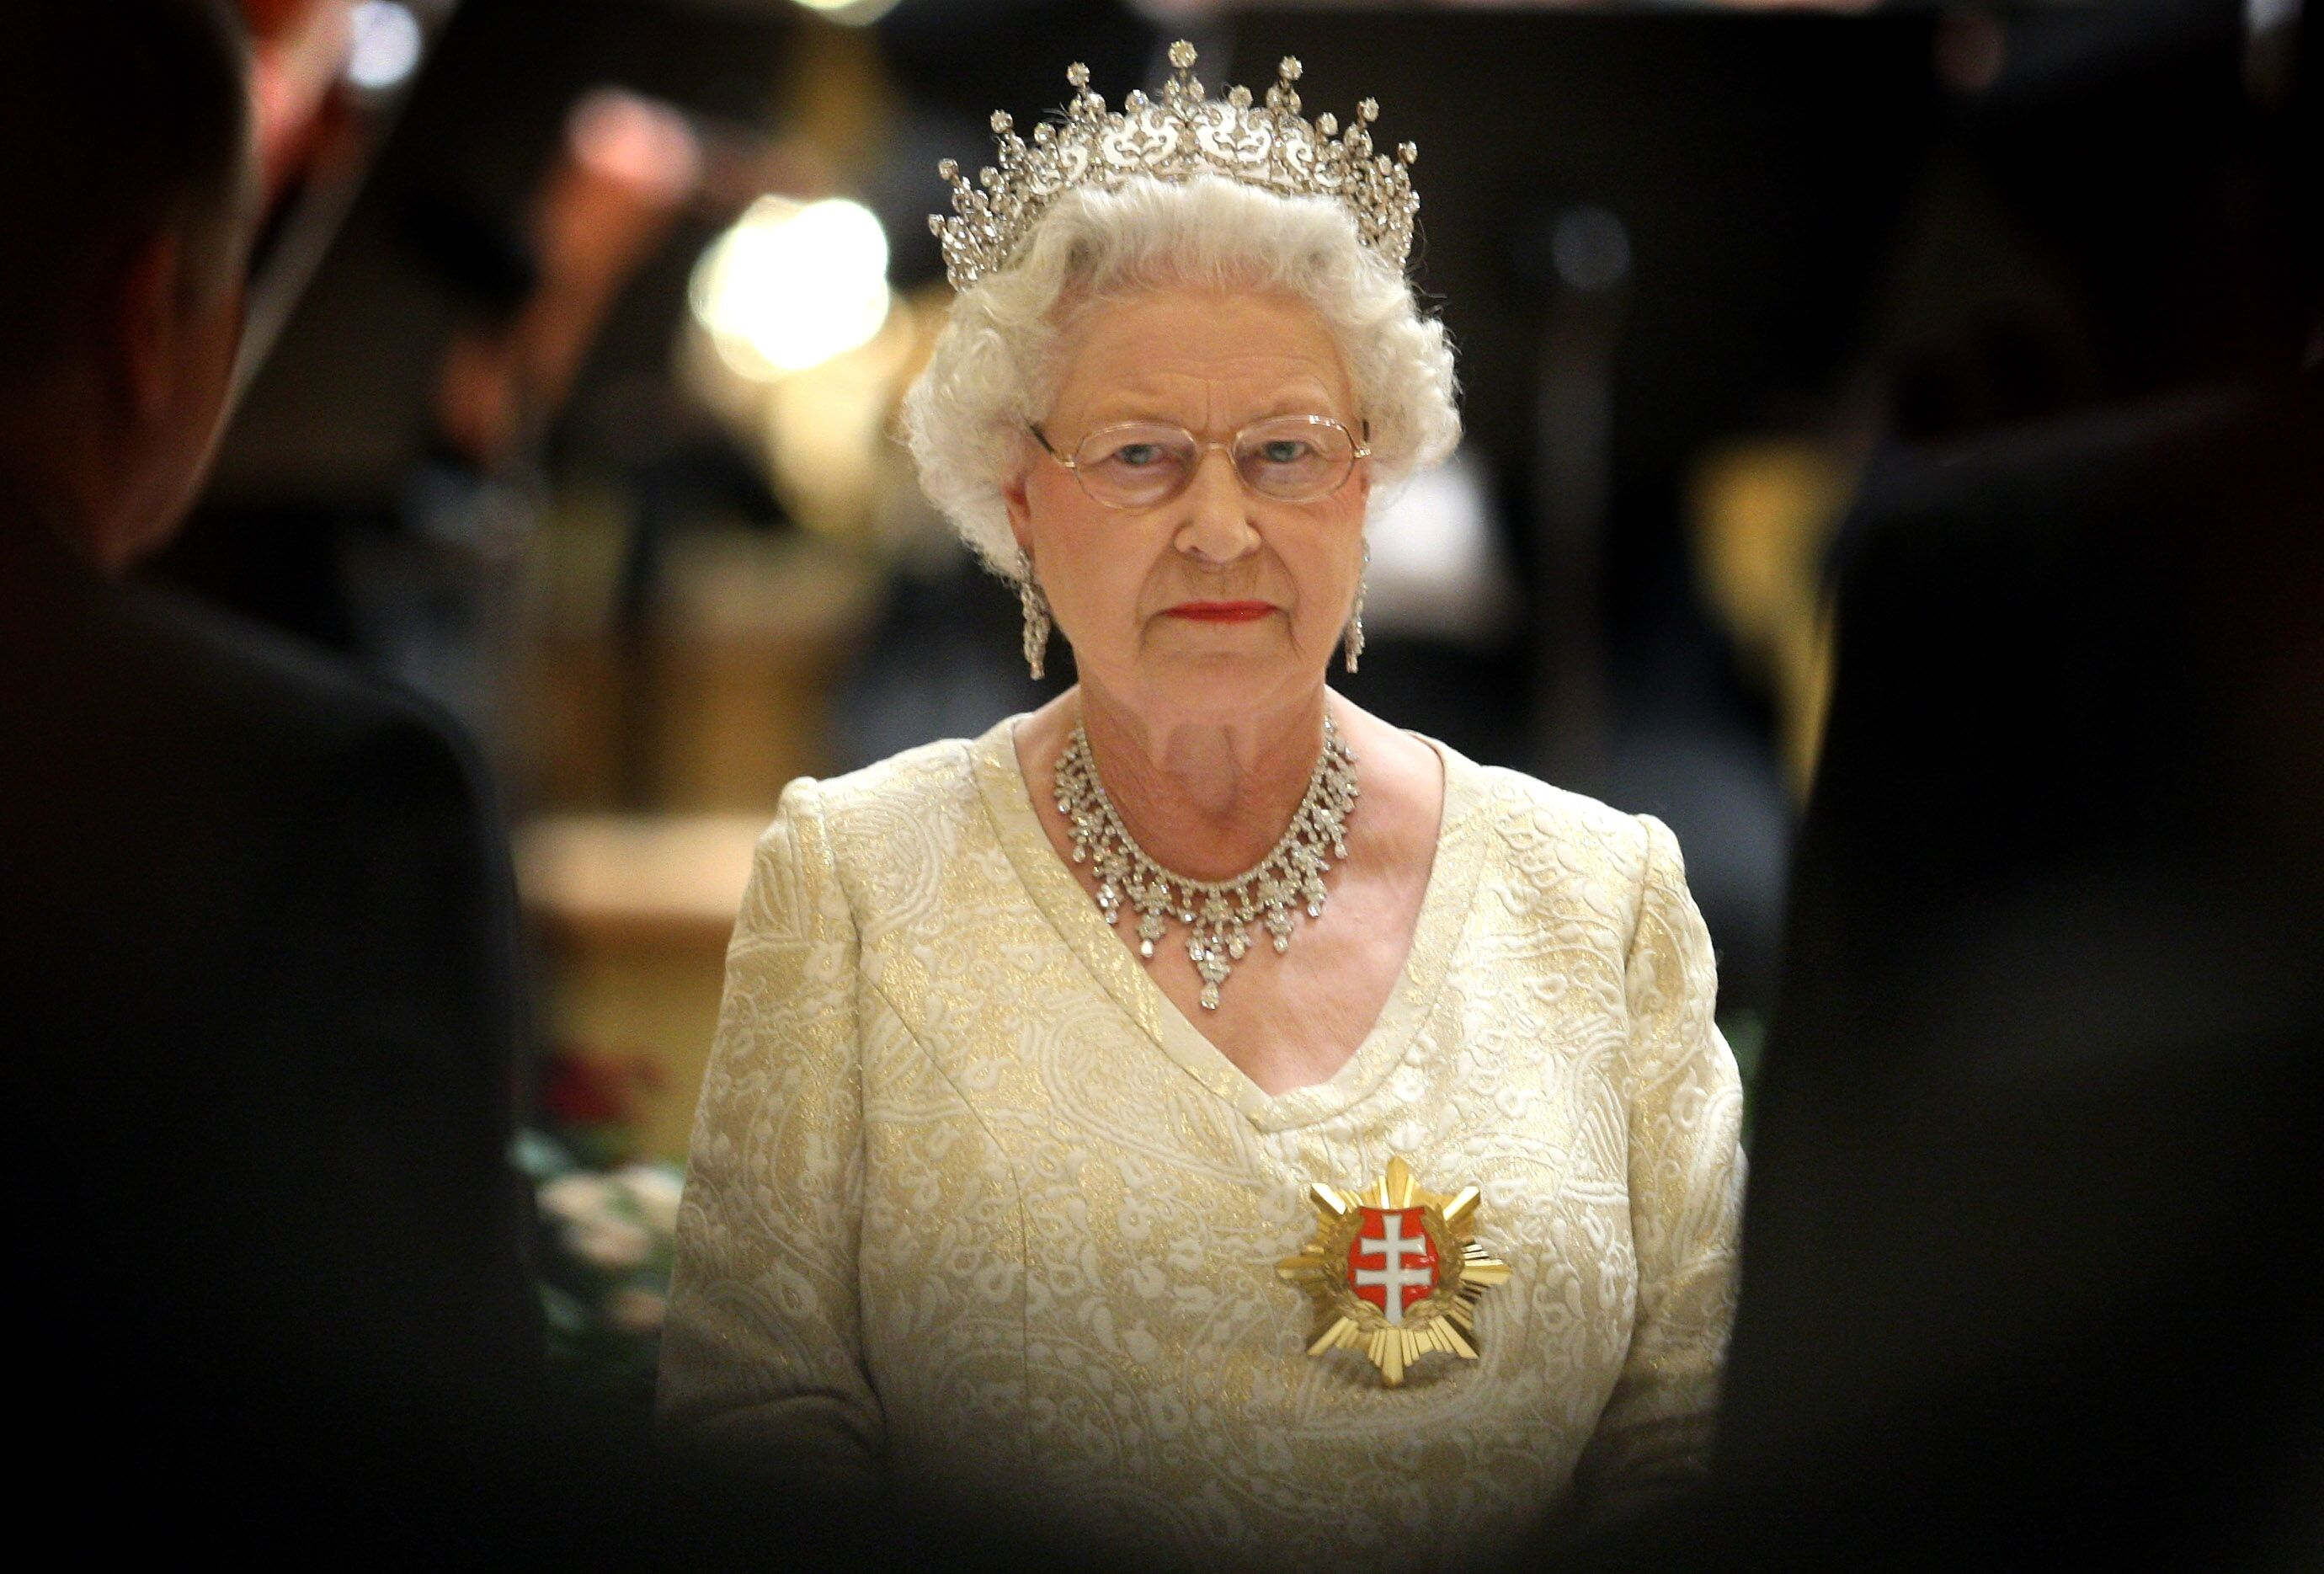 Queen Elizabeth II attends a State Banquet at the Philharmonic Hall on the first day of a tour of Slovakia on October 23, 2008 in Bratislava, Slovakia. | Photo: Getty Images